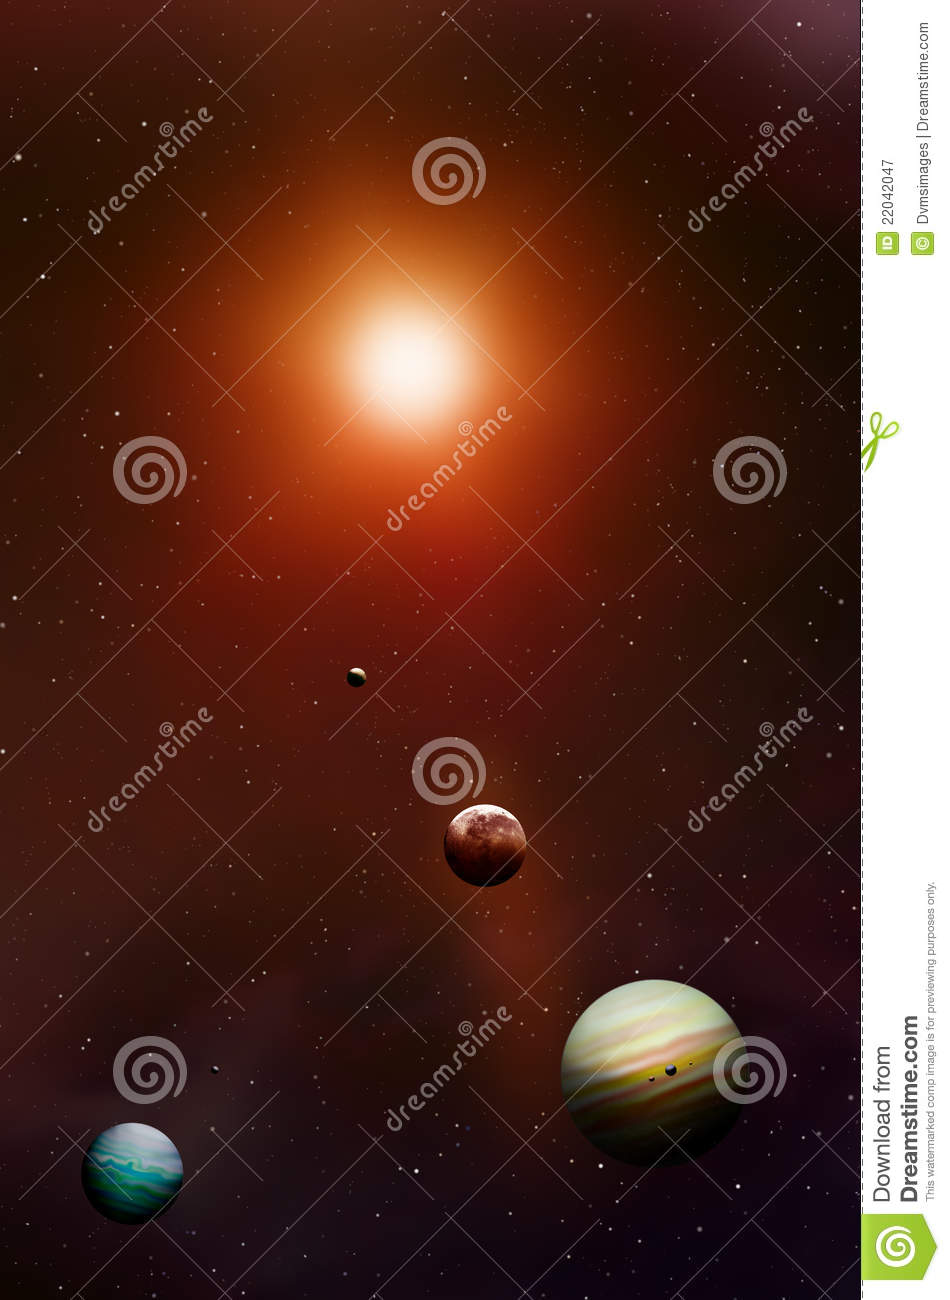 Space Stars and Planets